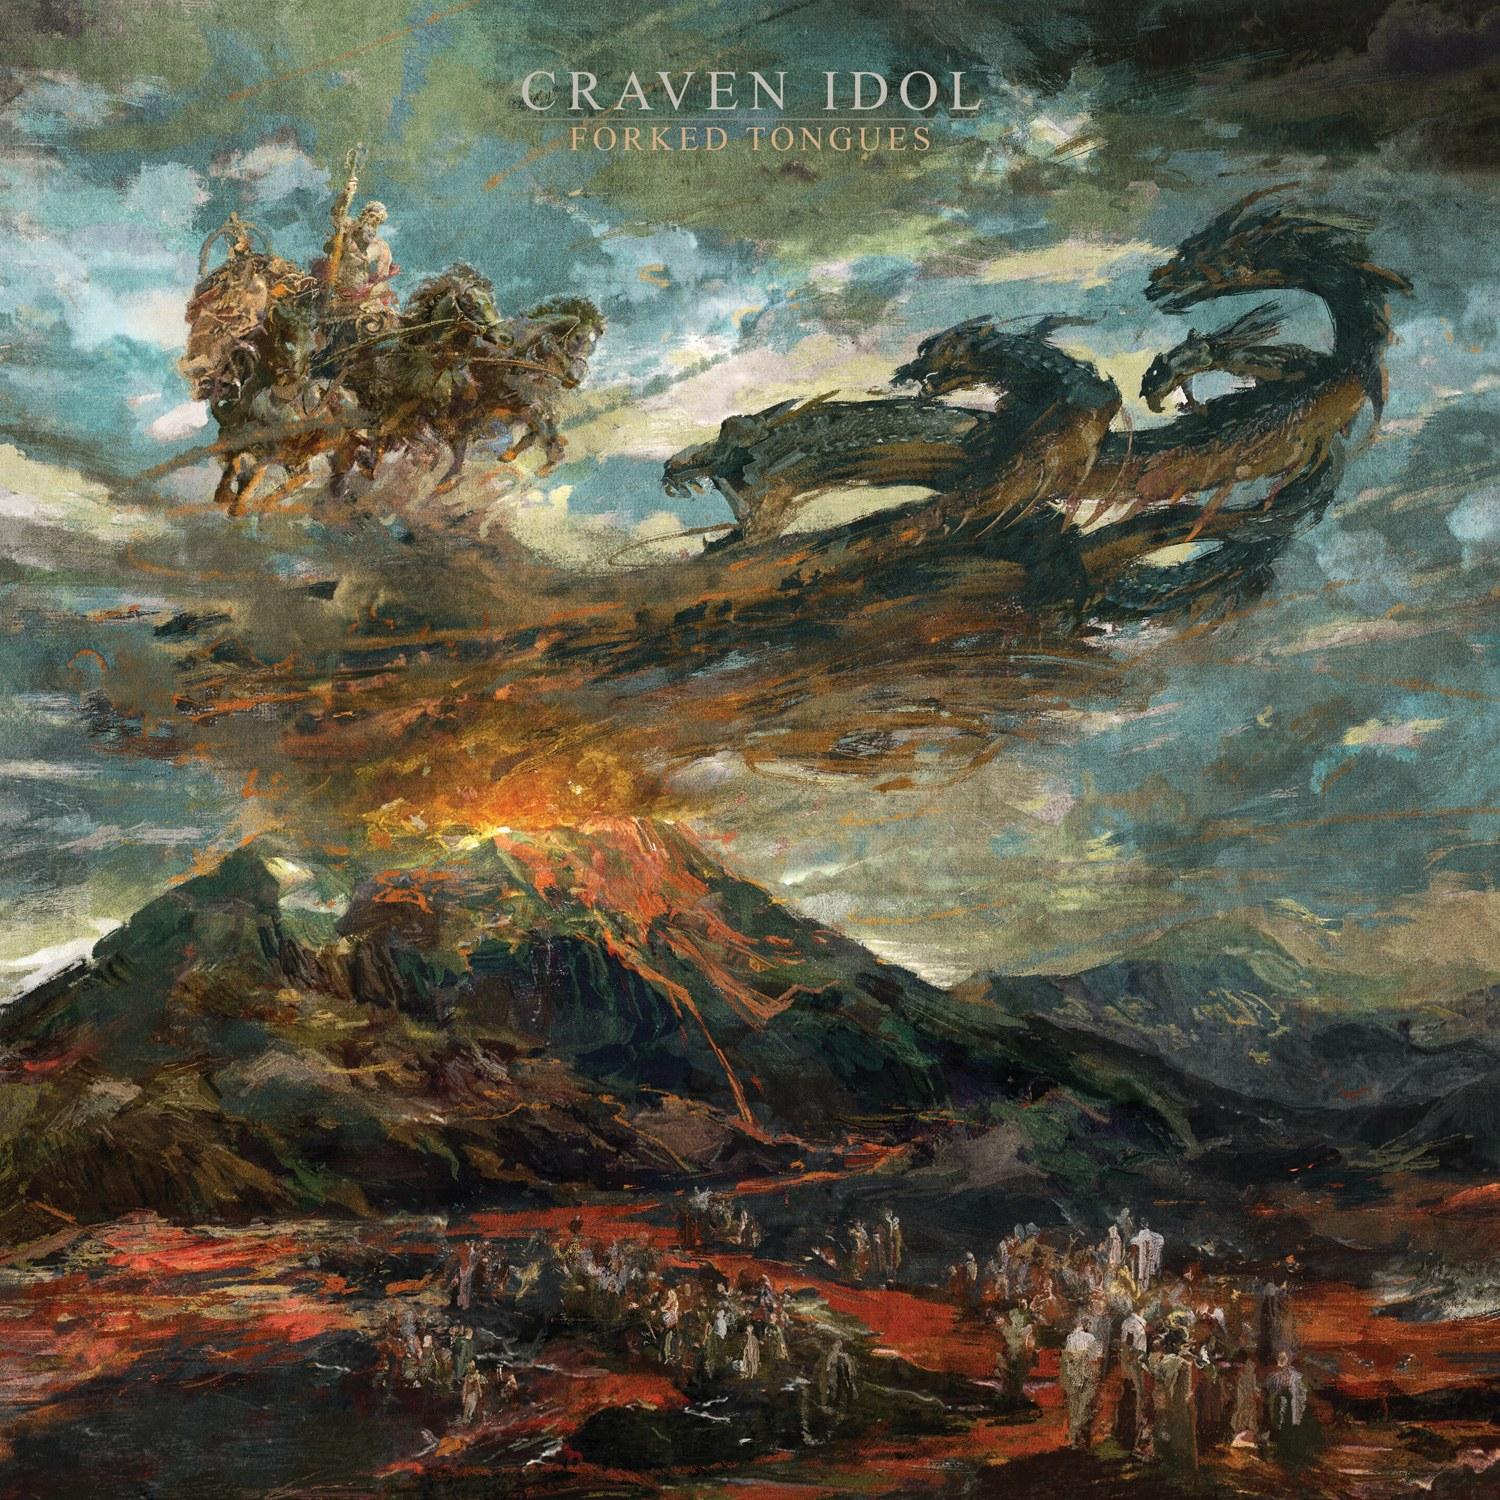 Reviews for Craven Idol - Forked Tongues